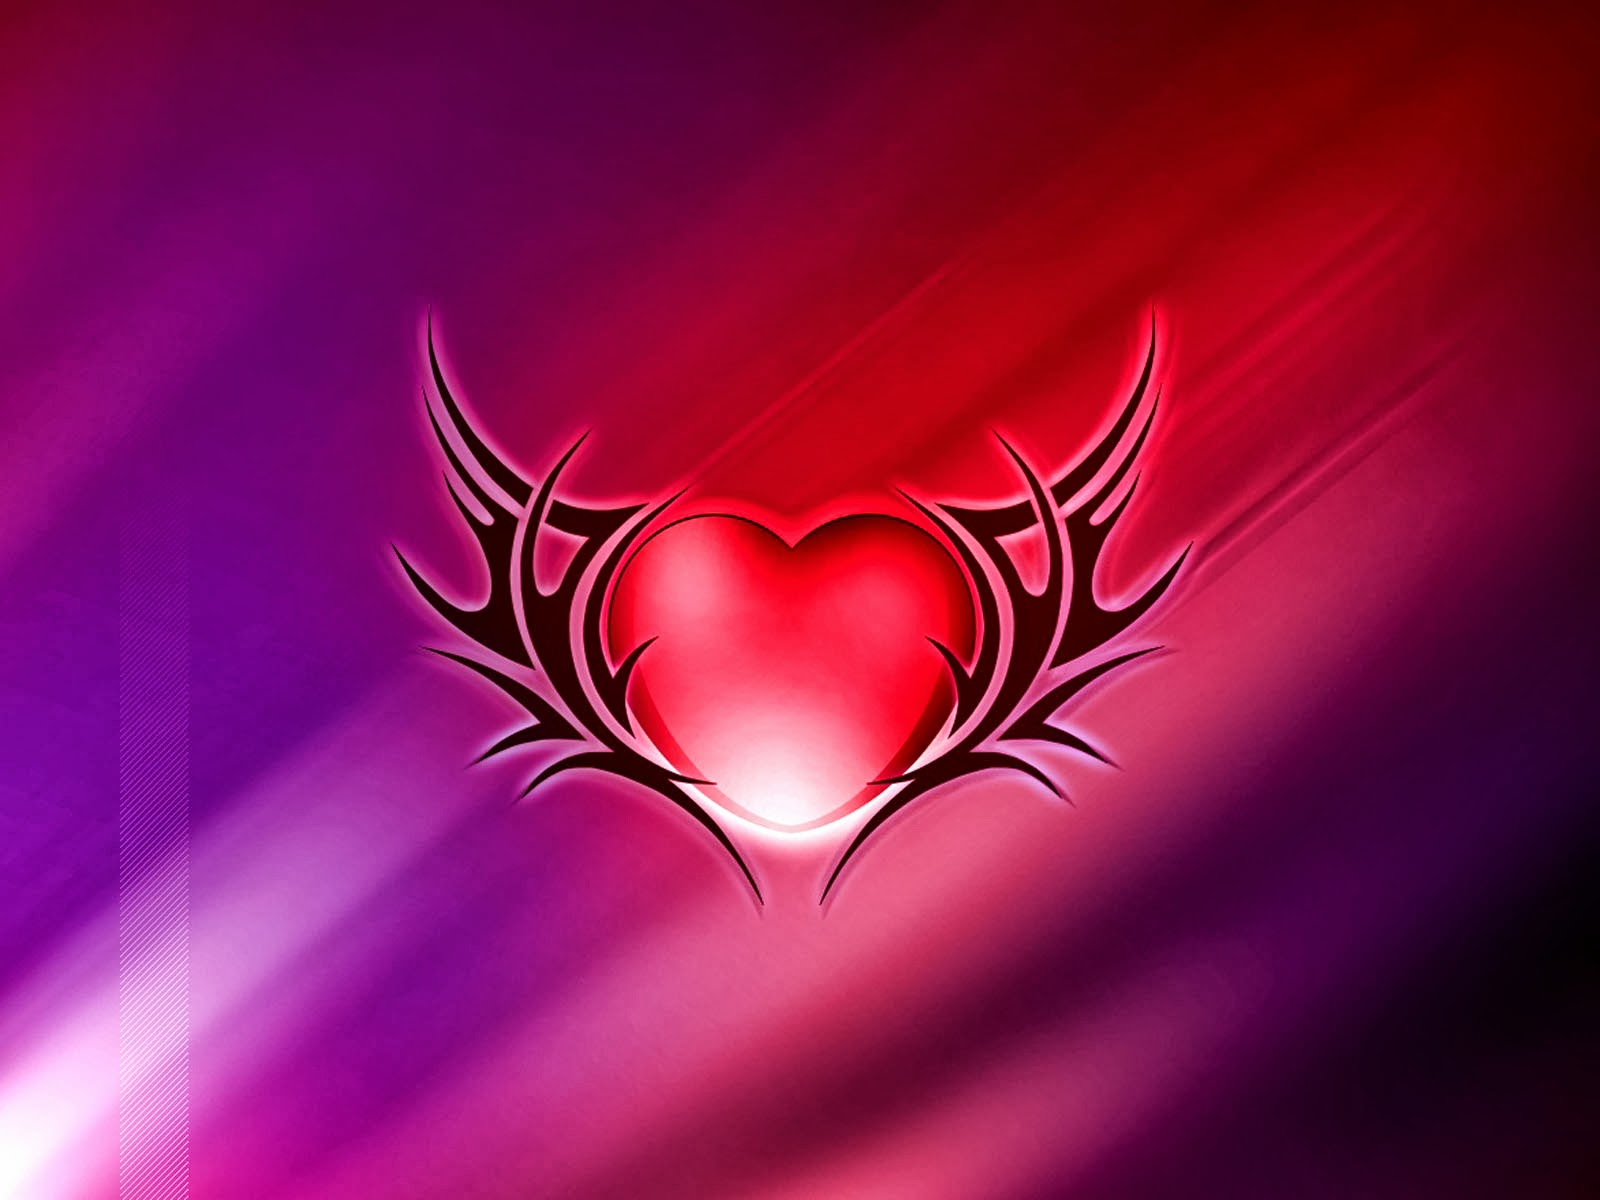 Love Wallpaper For Pc Desktop : wallpapers: Love Desktop Wallpapers